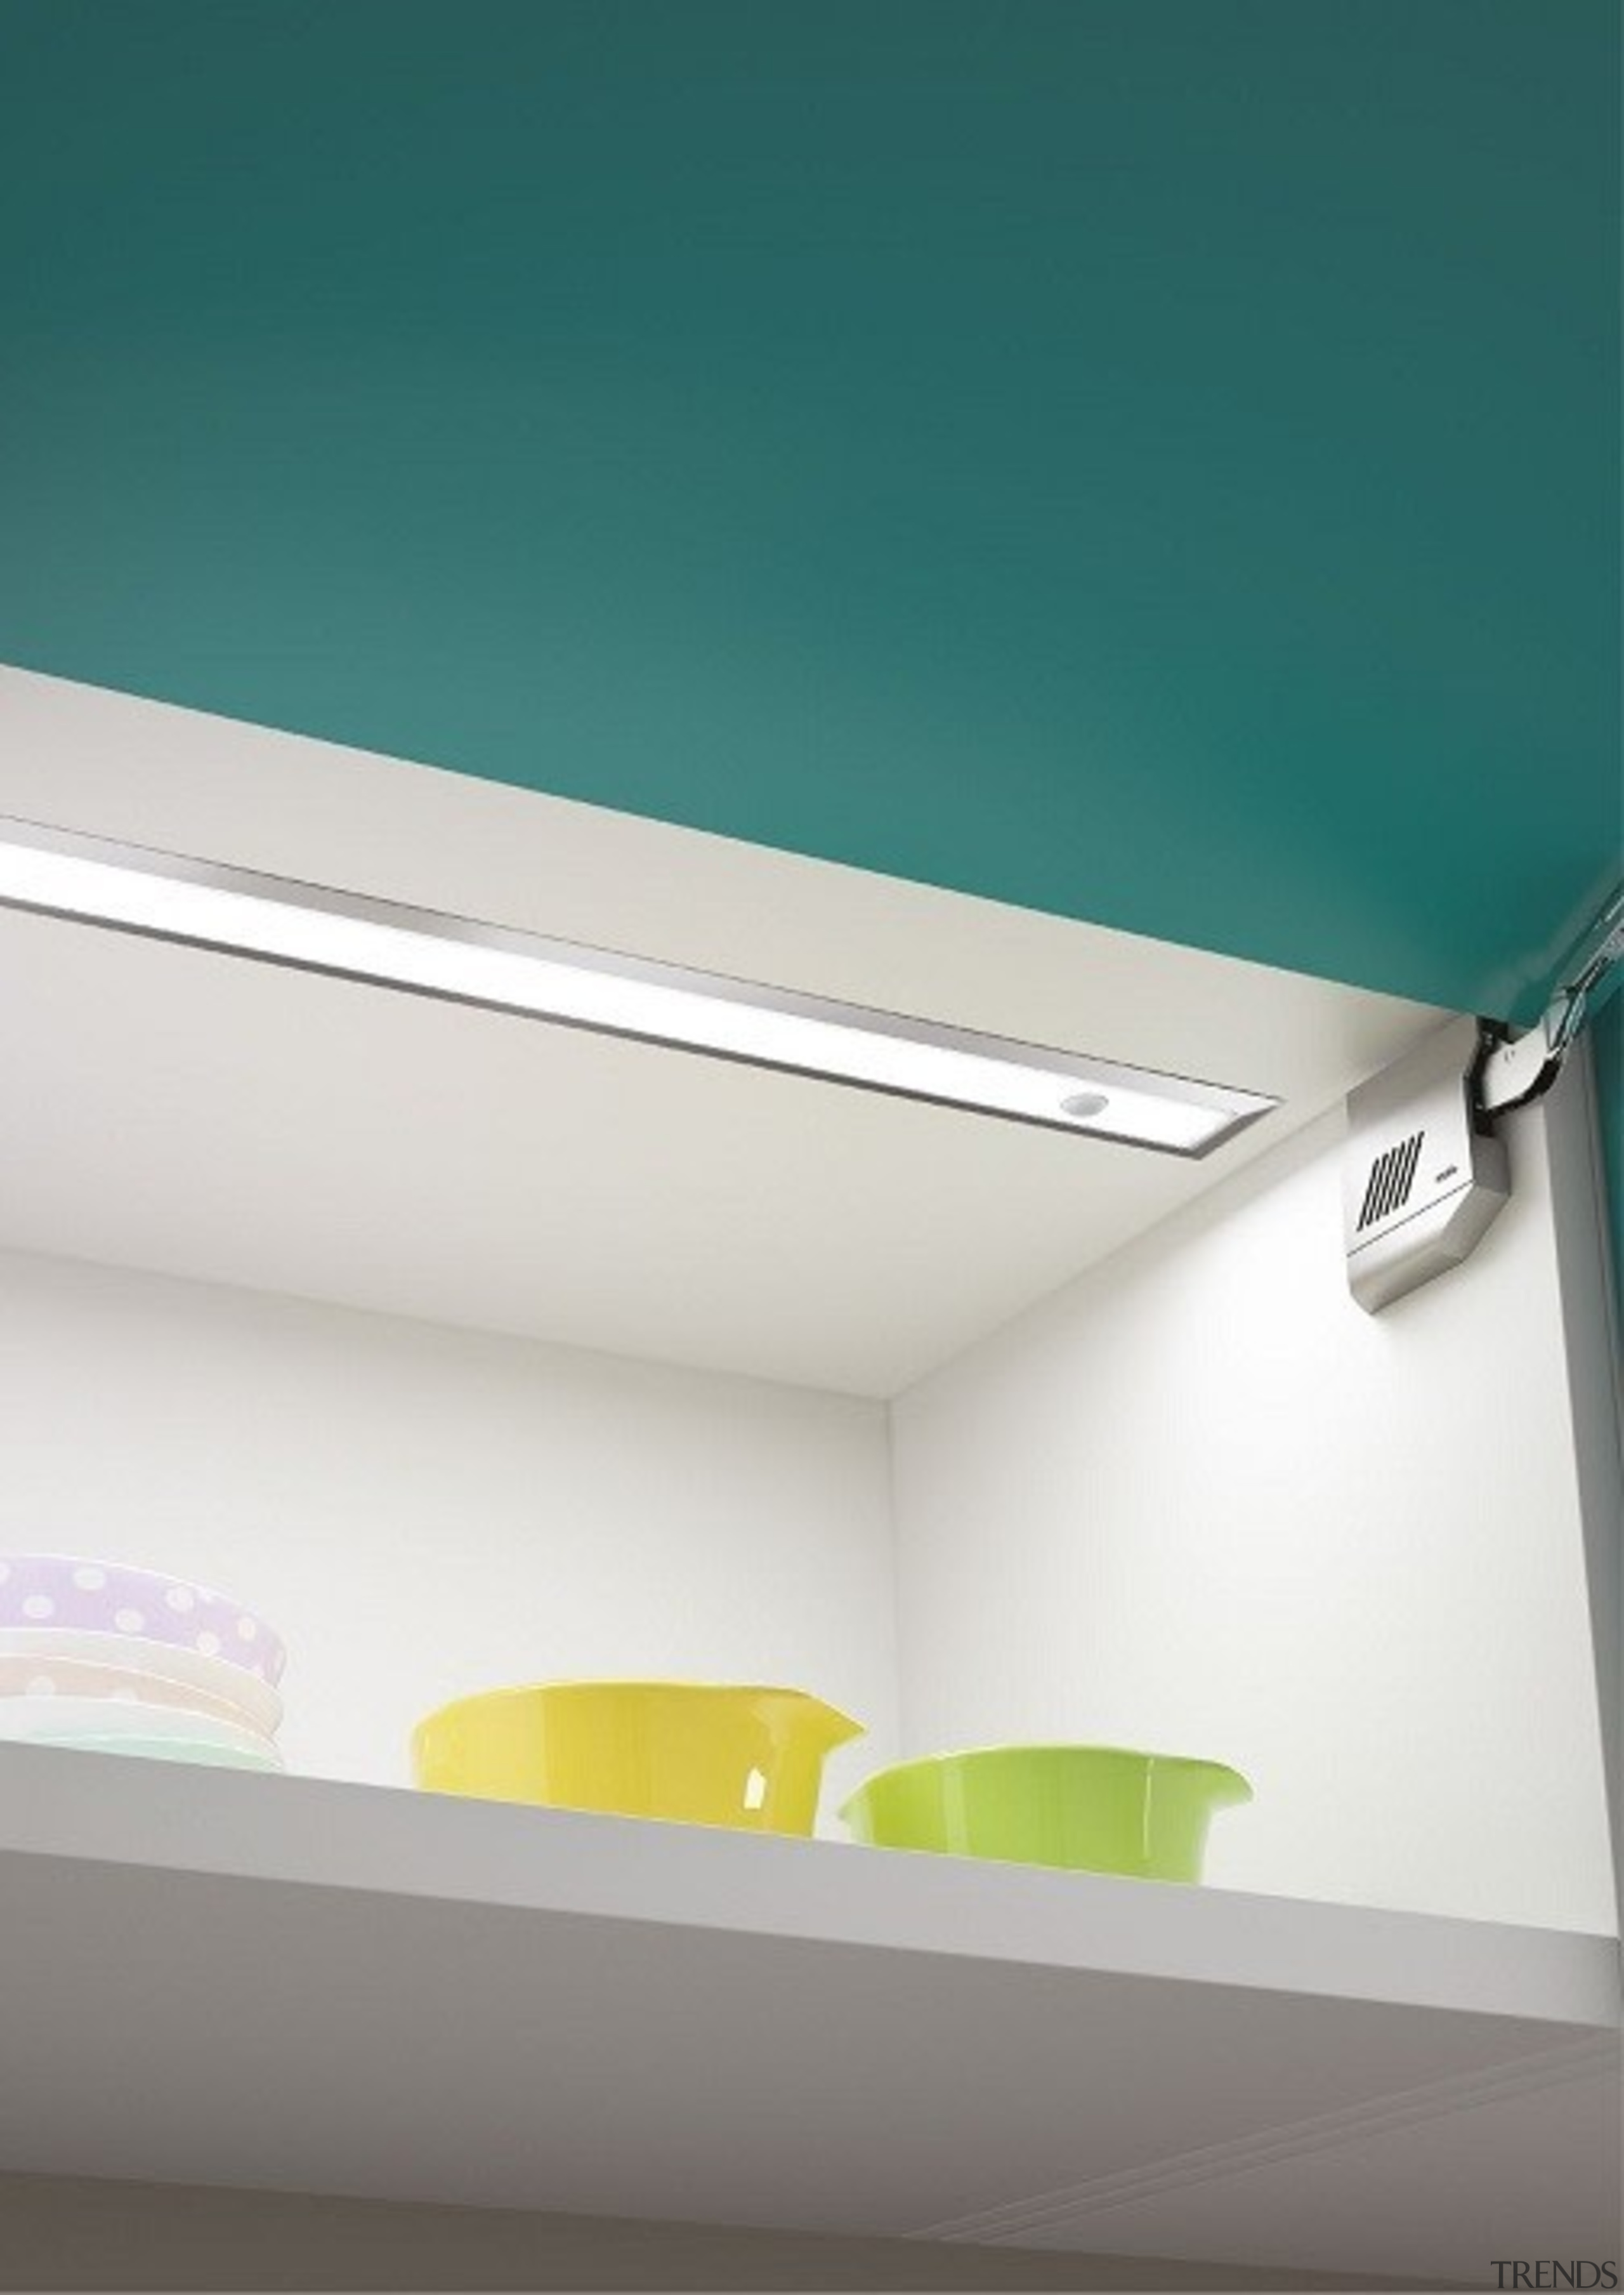 Ledye Led Lighting Profile Aluminium Finish Rece Trends Electrical Wiring In The Home Installing A New Ceiling Light Designed Italy To Comply With Australian Zealand Angle Architecture